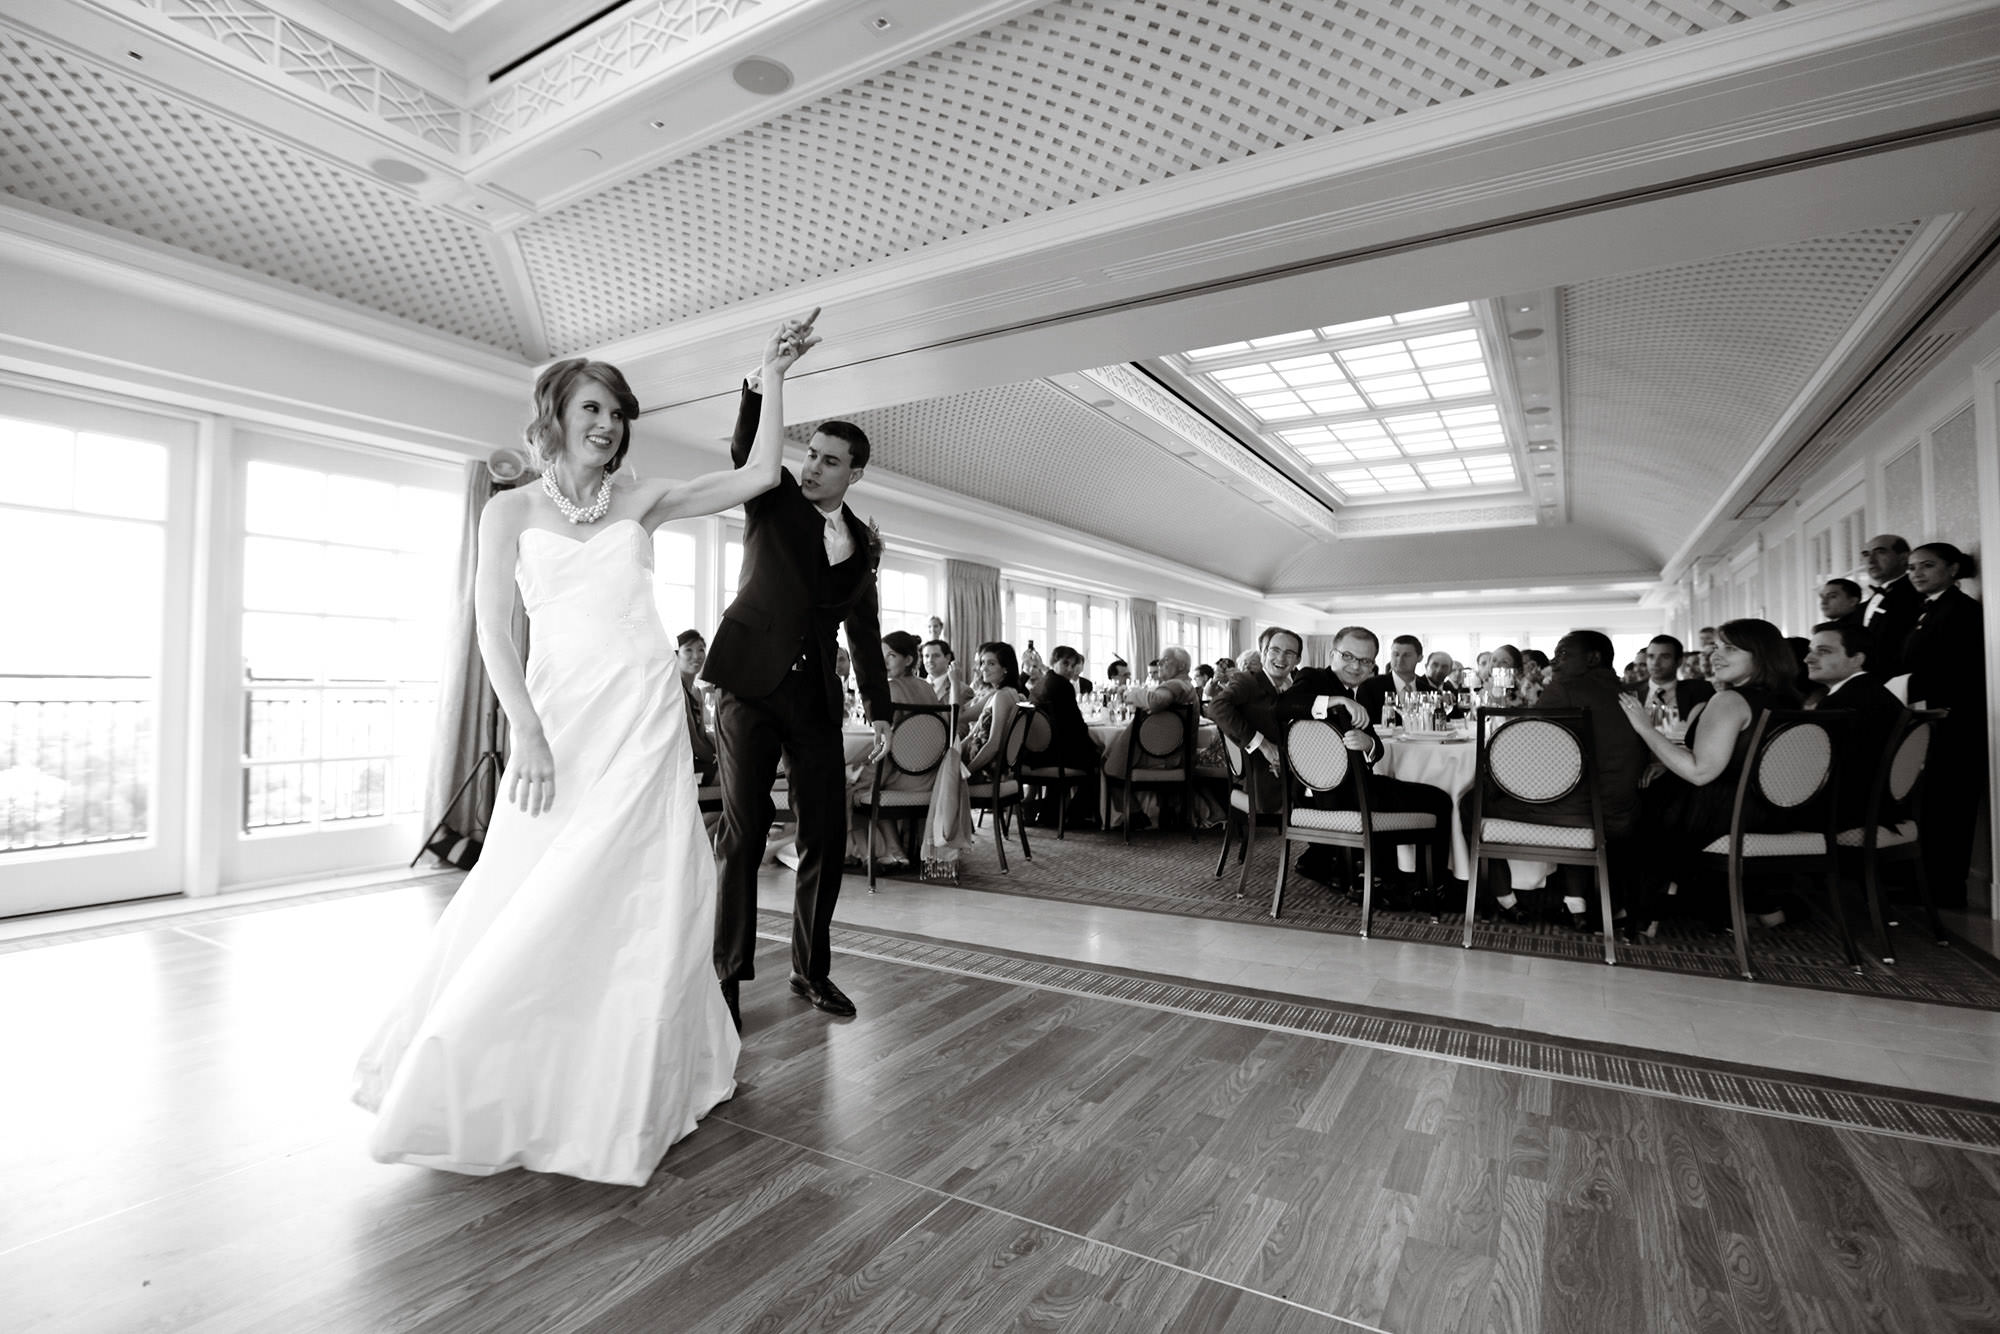 The bride and groom share their first dance during their wedding reception at the Hay Adams hotel in DC.